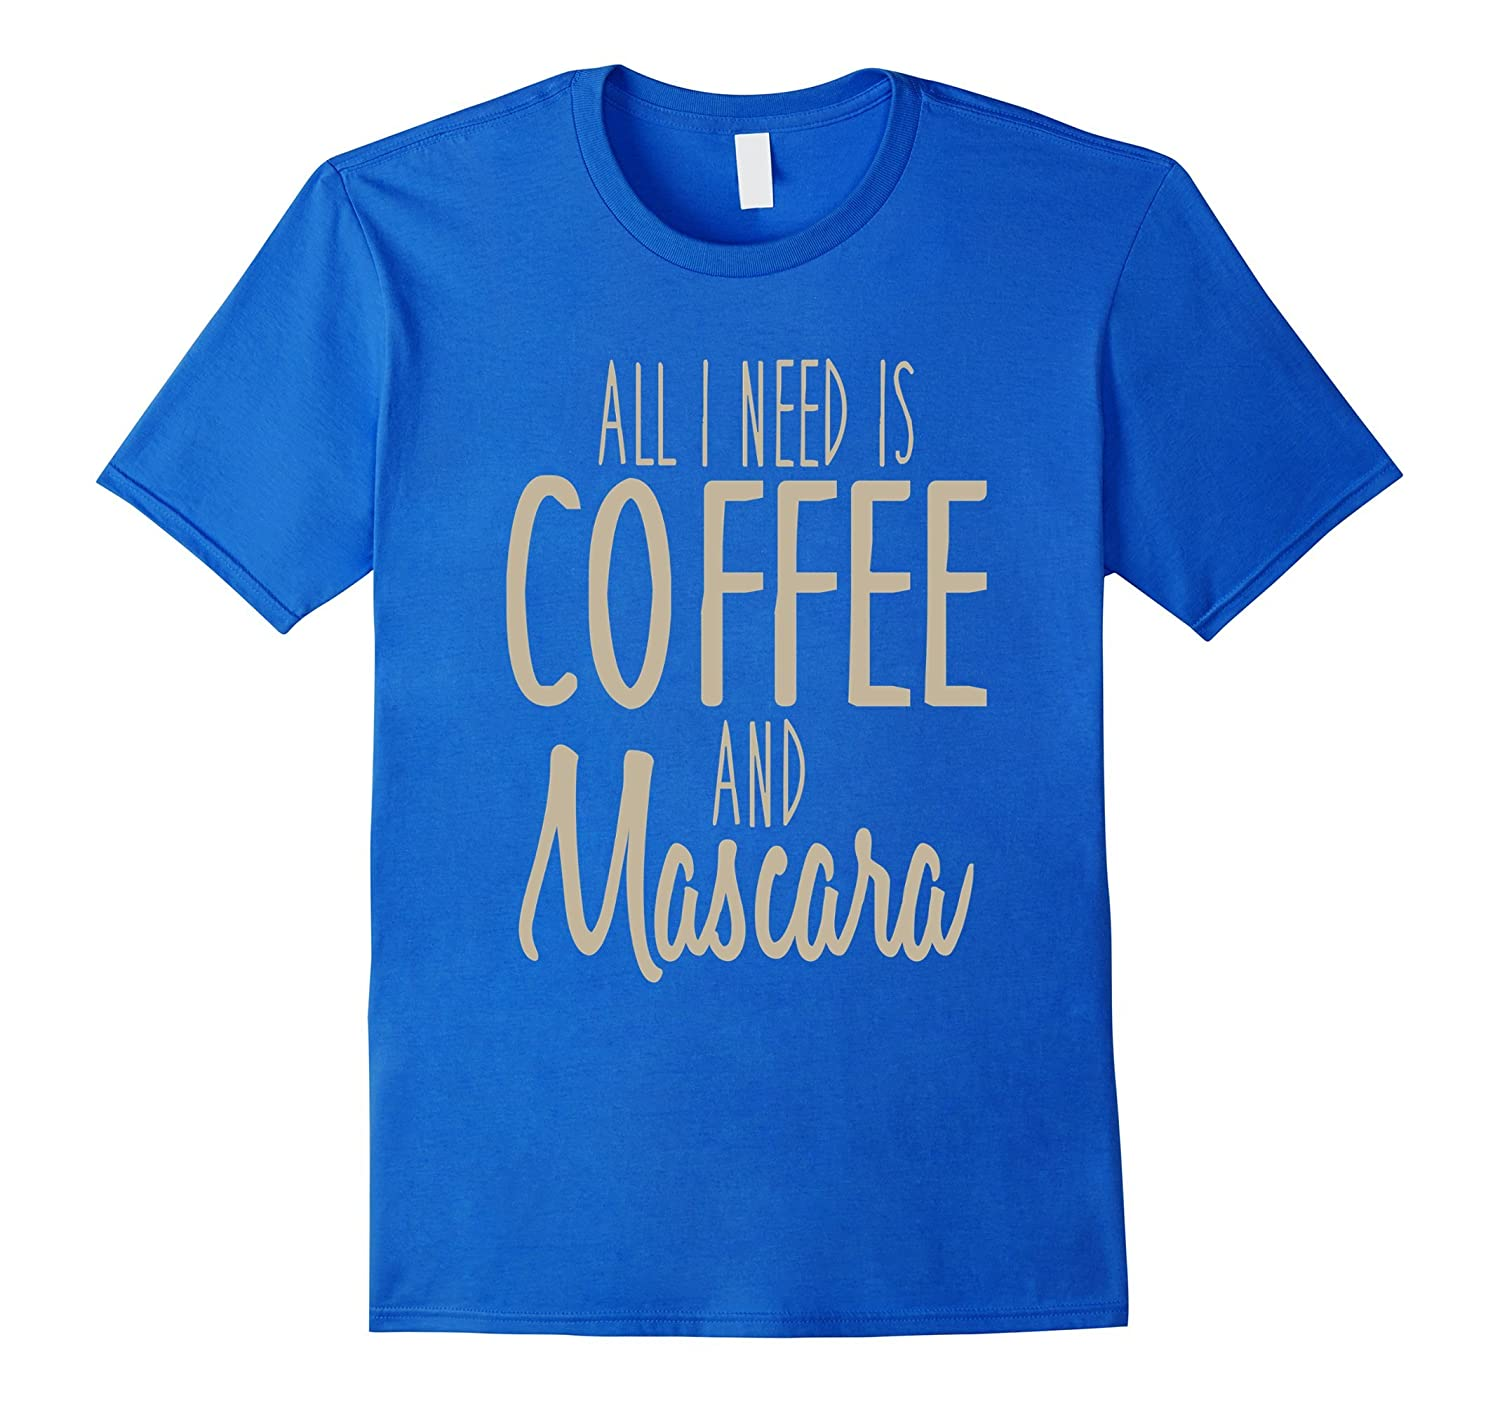 903274c200d All I Need Is Coffee & Mascara T-Shirt Funny Women Sayings-BN